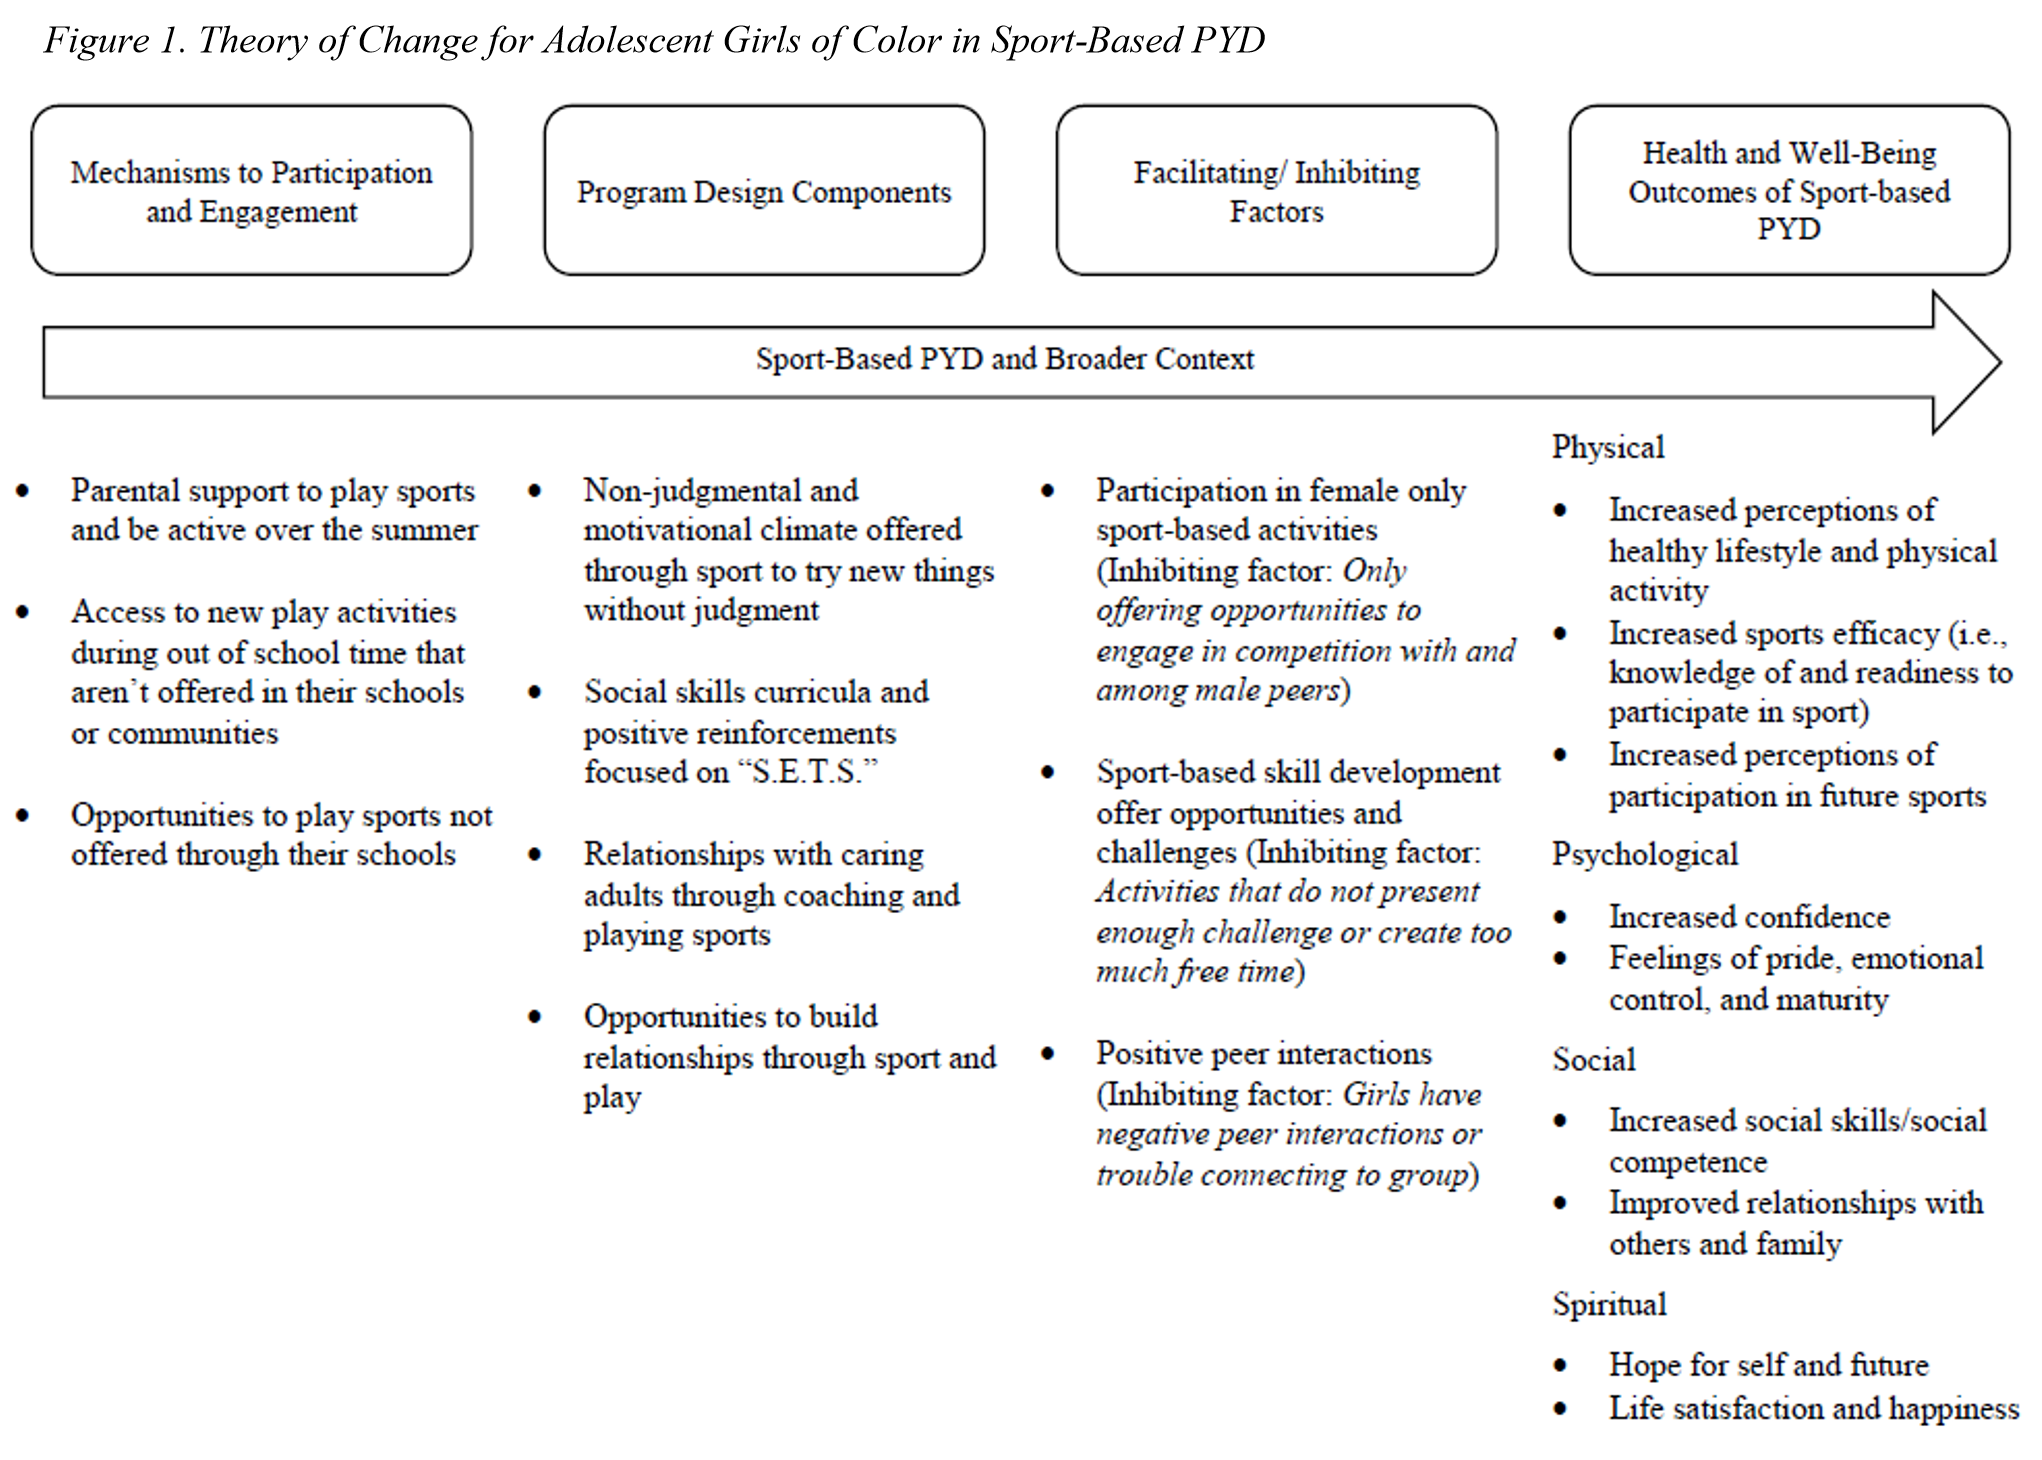 Figure 1 - Theory of Change for Adolescent Girls of Color in Sport-Based PYD